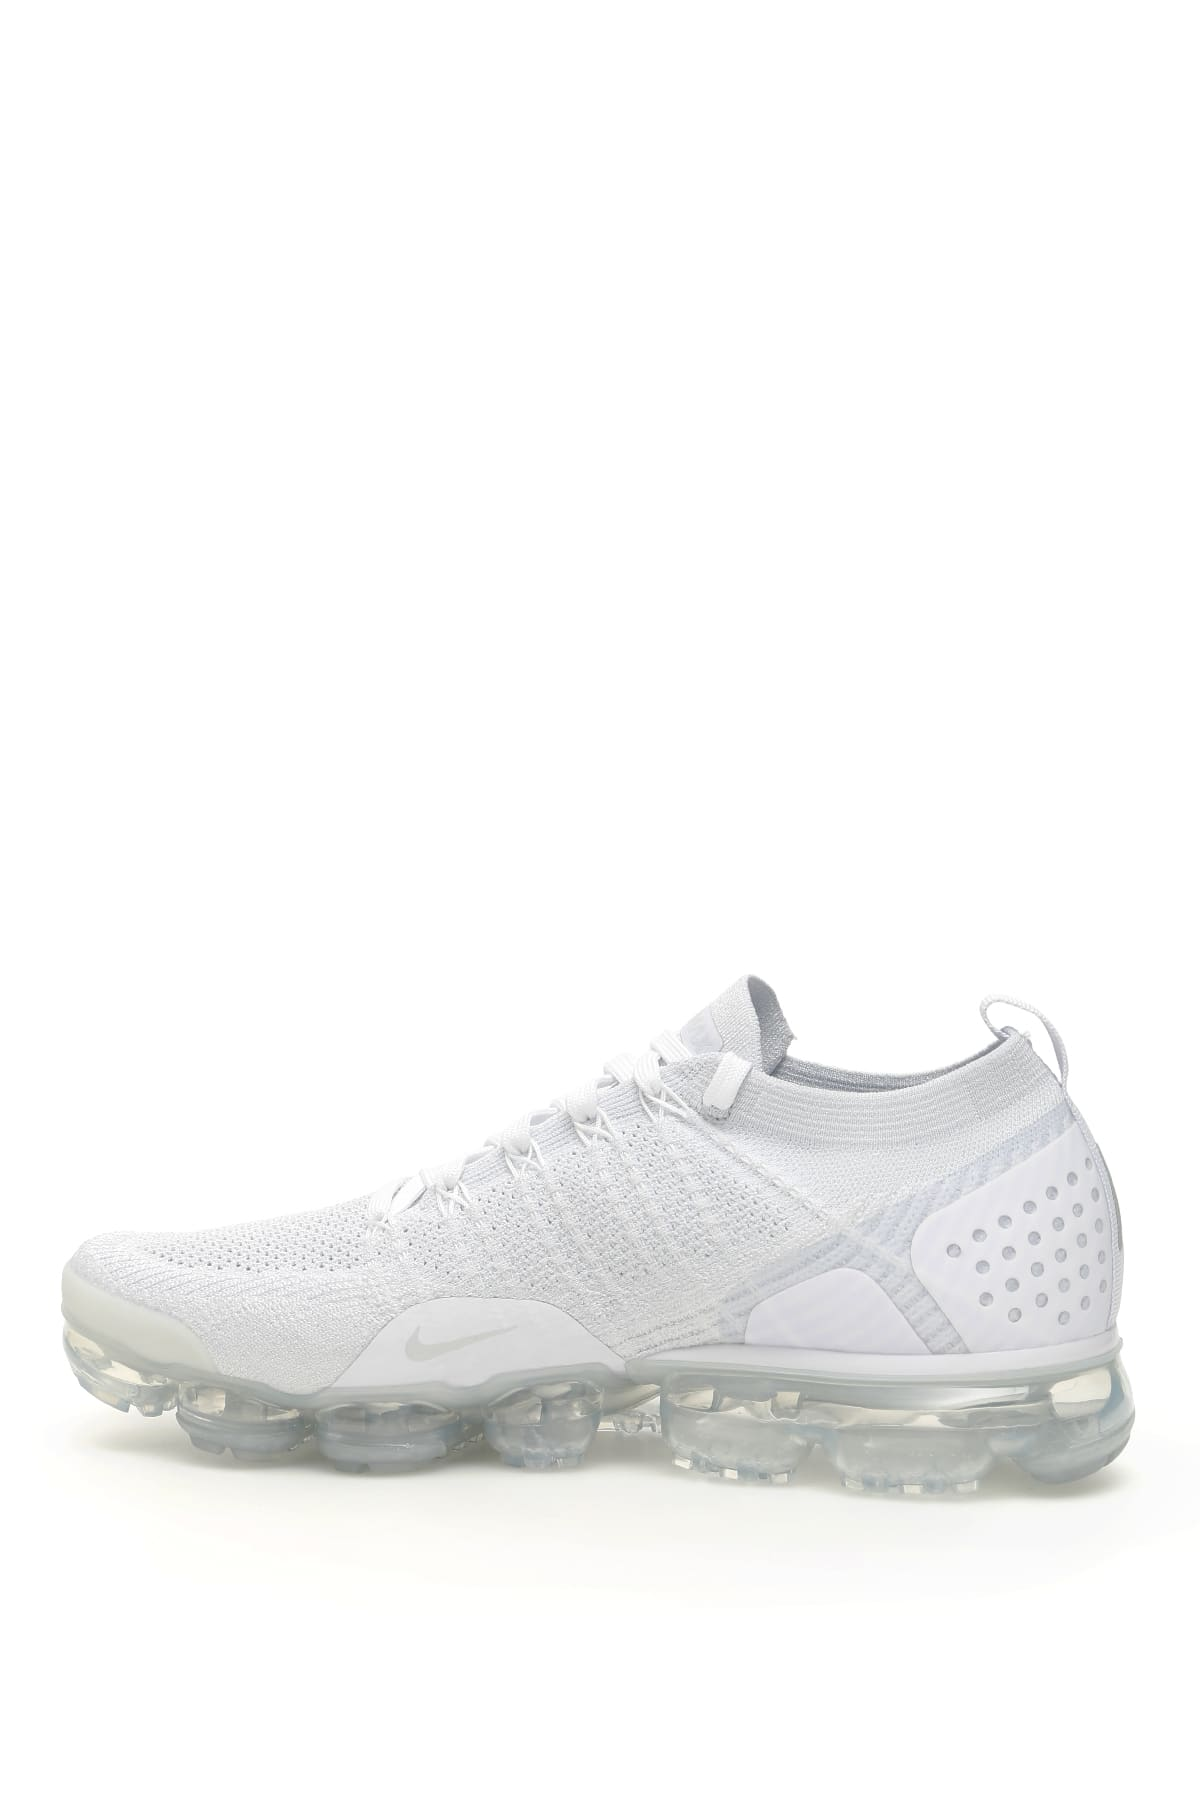 new product 437df a0582 Nike Air Vapormax Flyknit 2 Sneakers